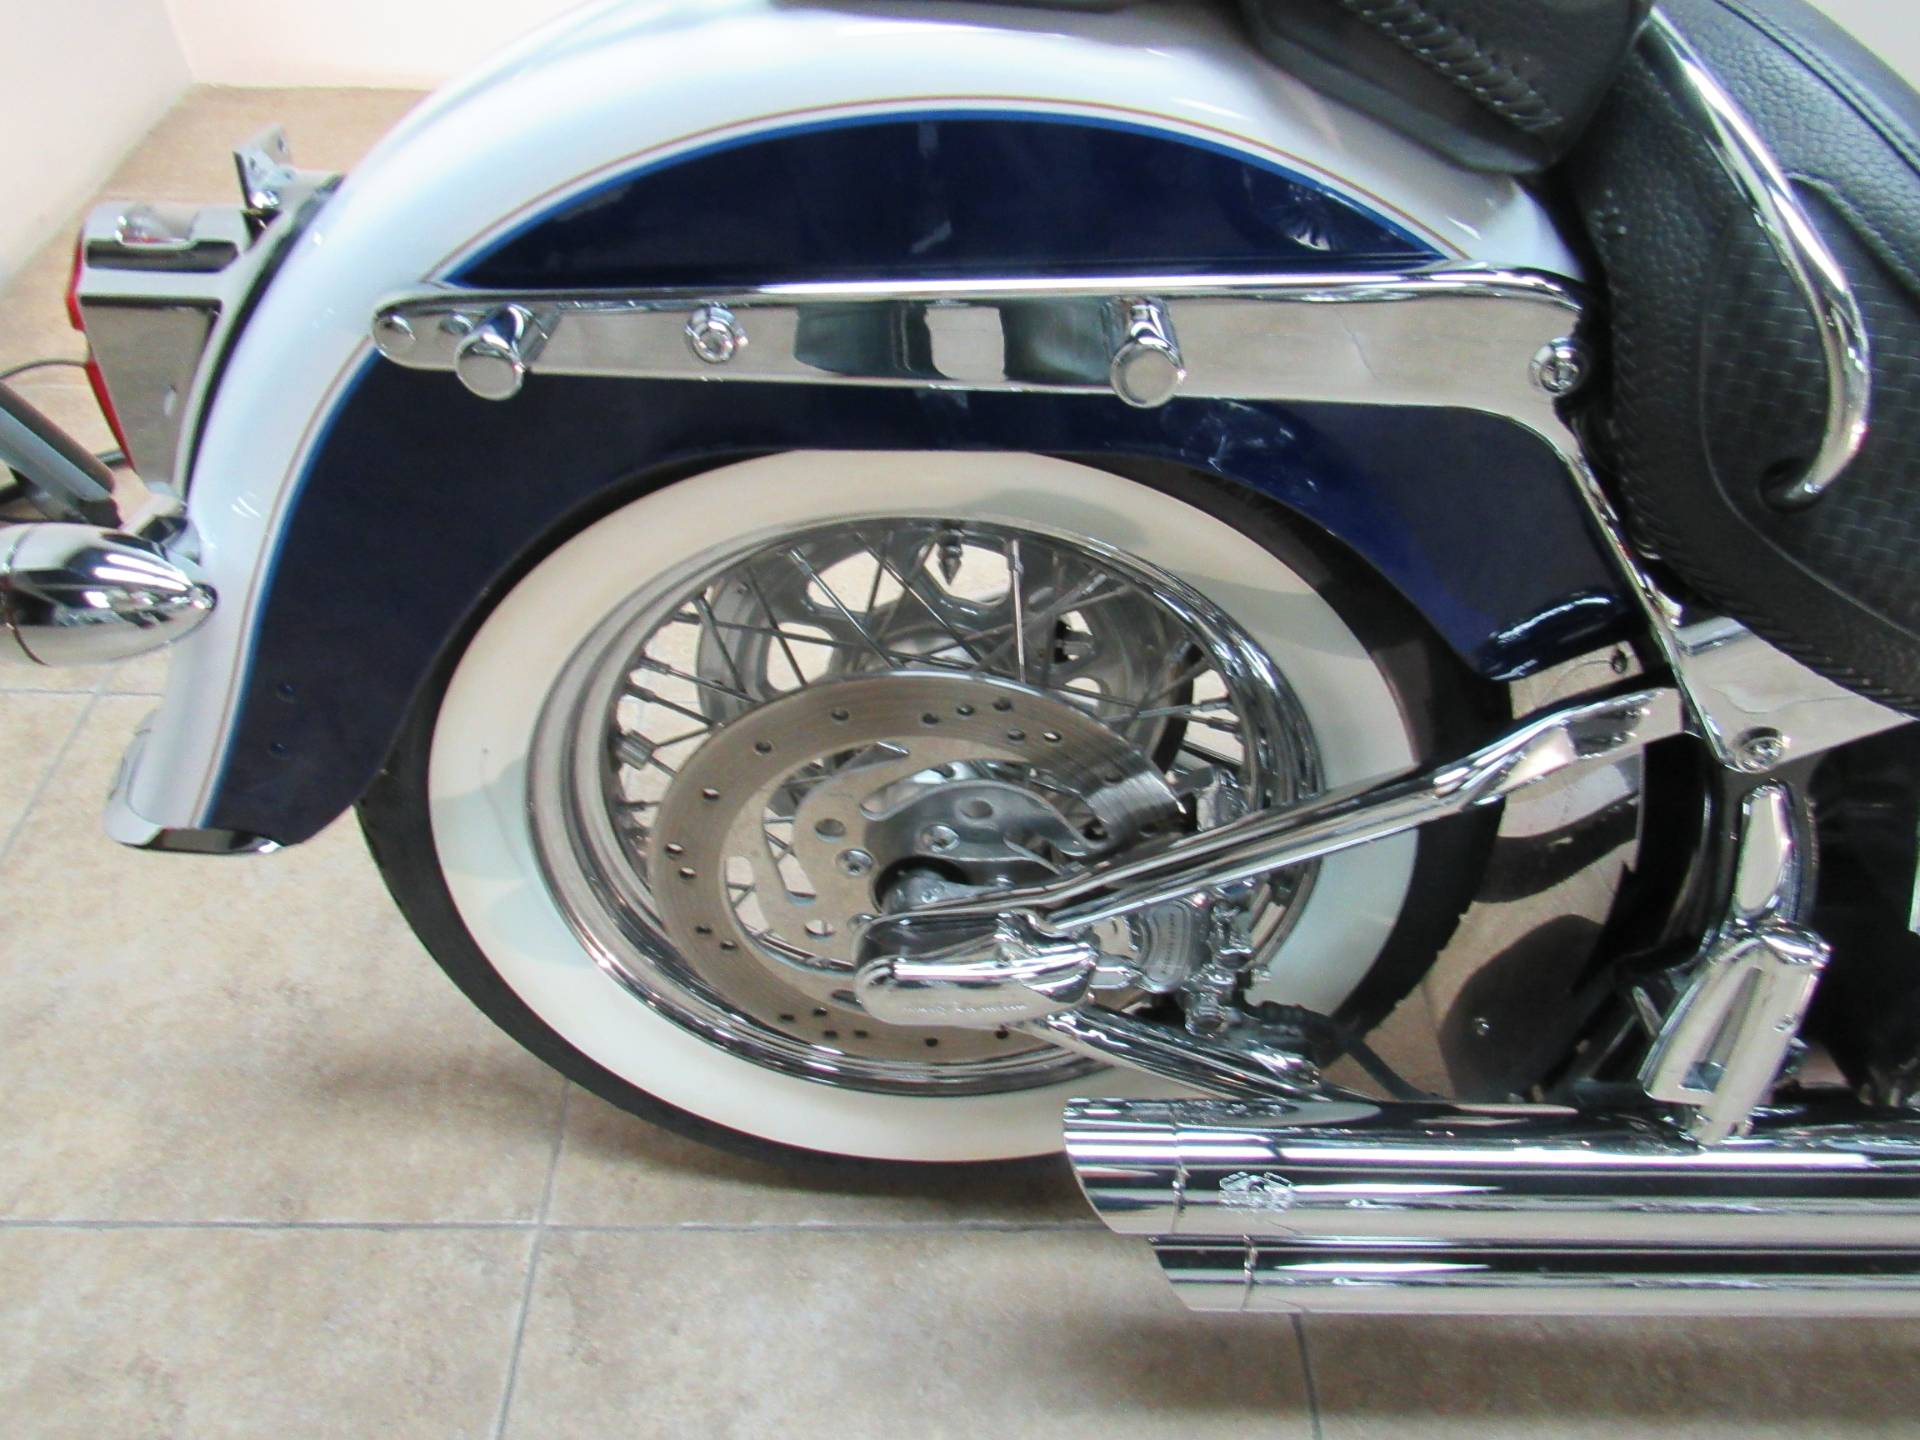 2007 Harley-Davidson Softail® Deluxe in Temecula, California - Photo 5